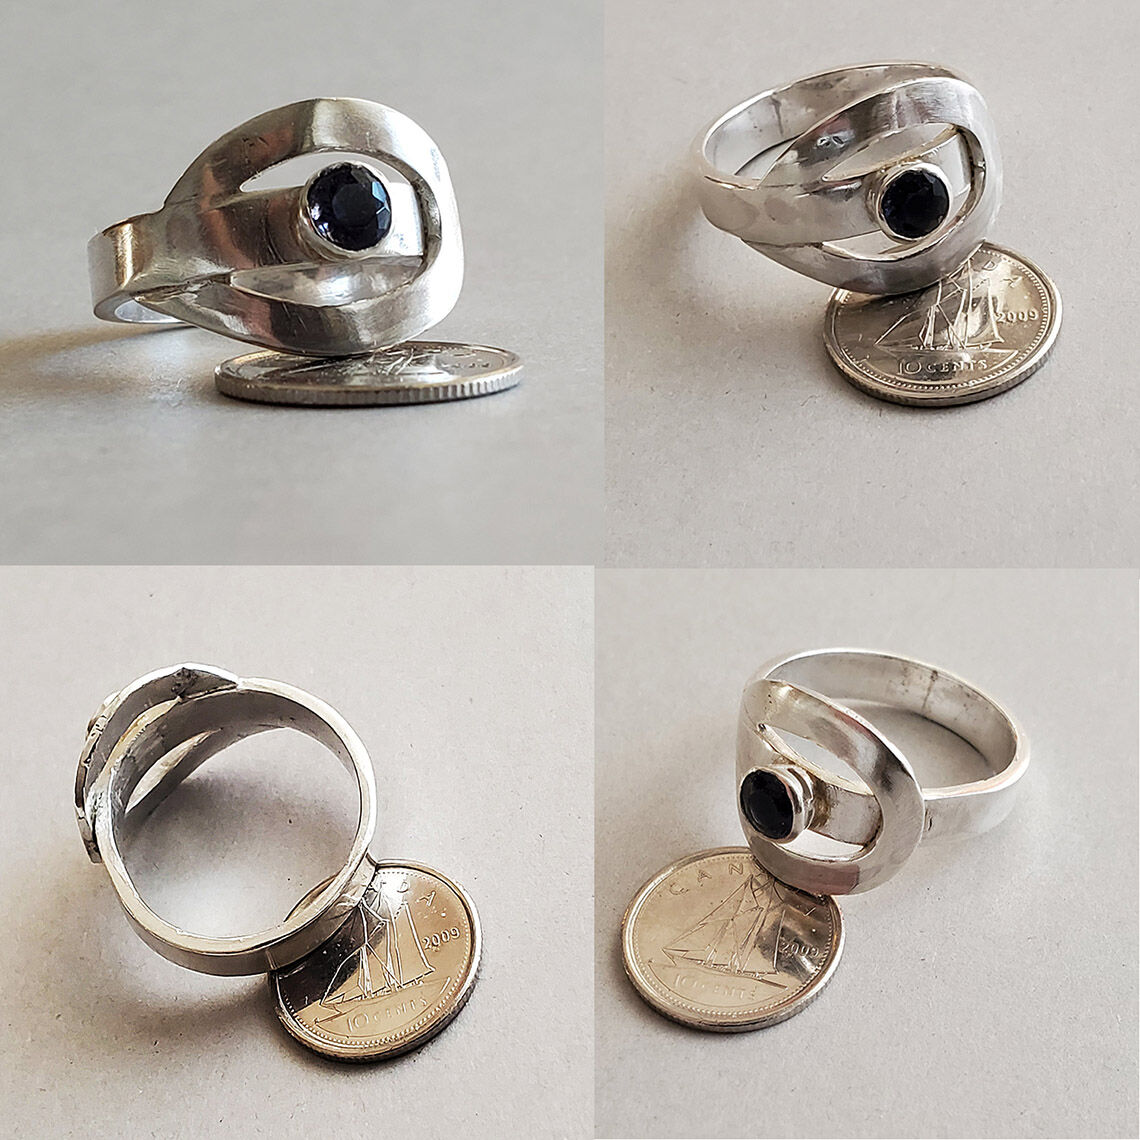 R2101 - Various views - Commission ring: sterling silver with iolite stone